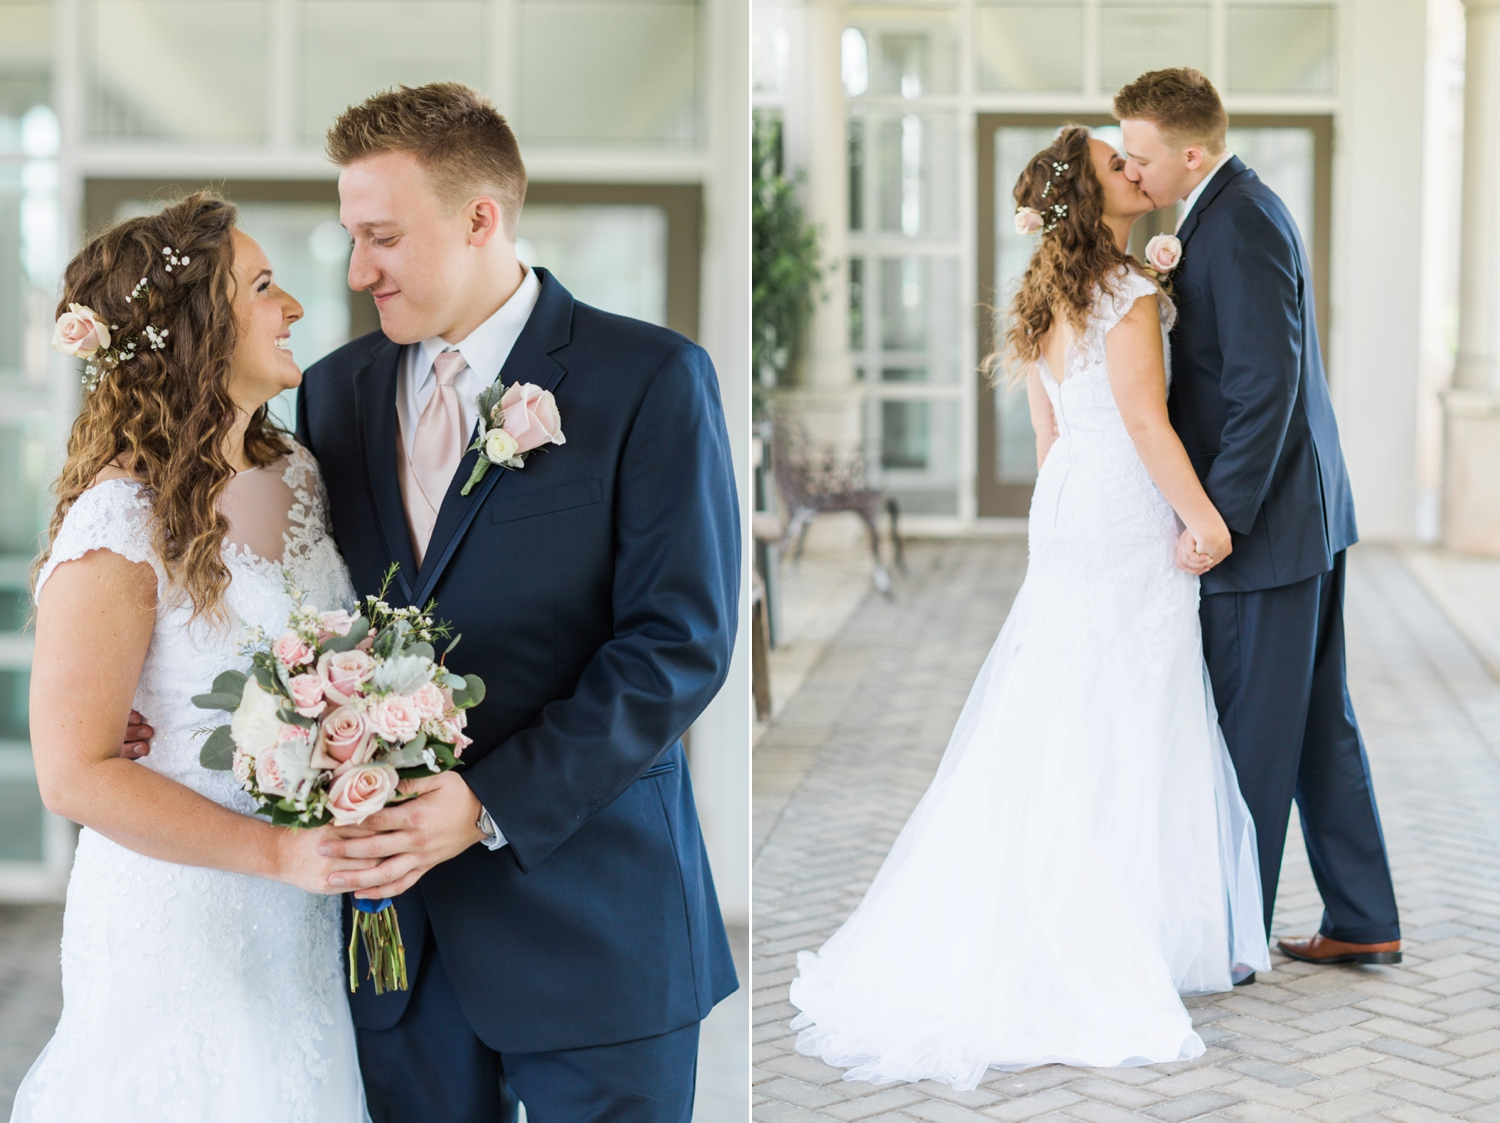 Community_Life_Center_Indianapolis_Indiana_Wedding_Photographer_Chloe_Luka_Photography_6872.jpg